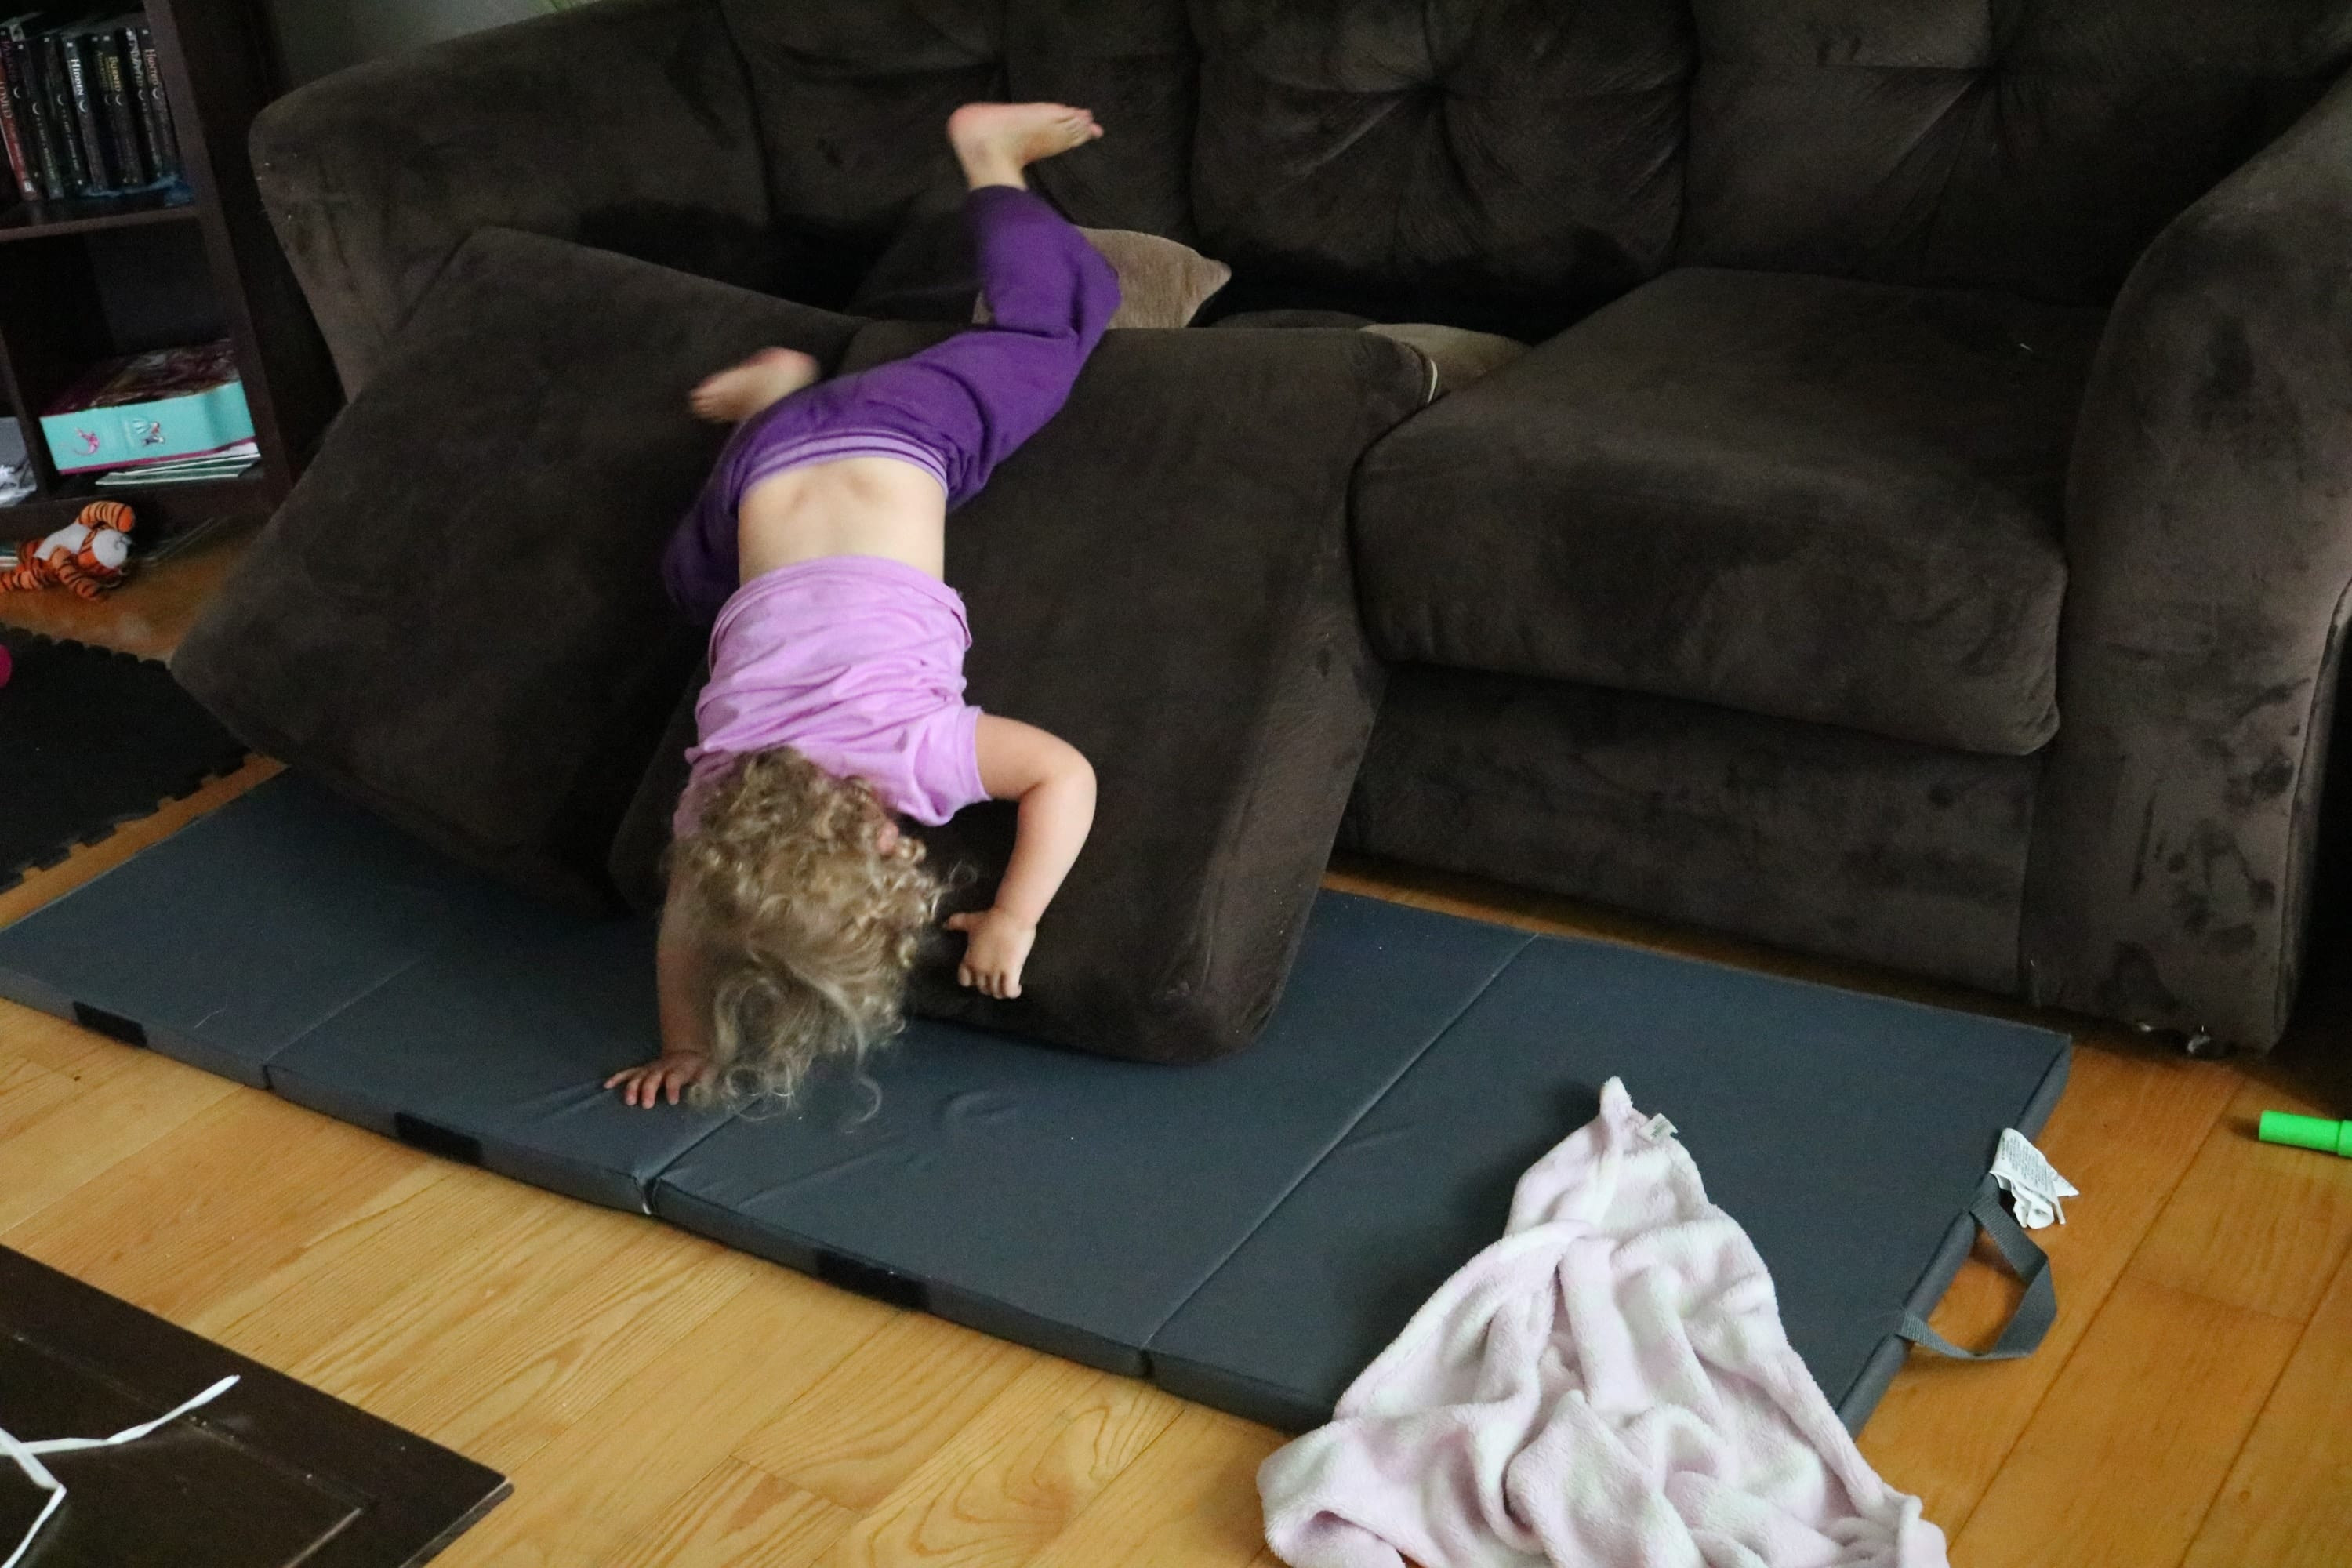 Toddler playing on couch